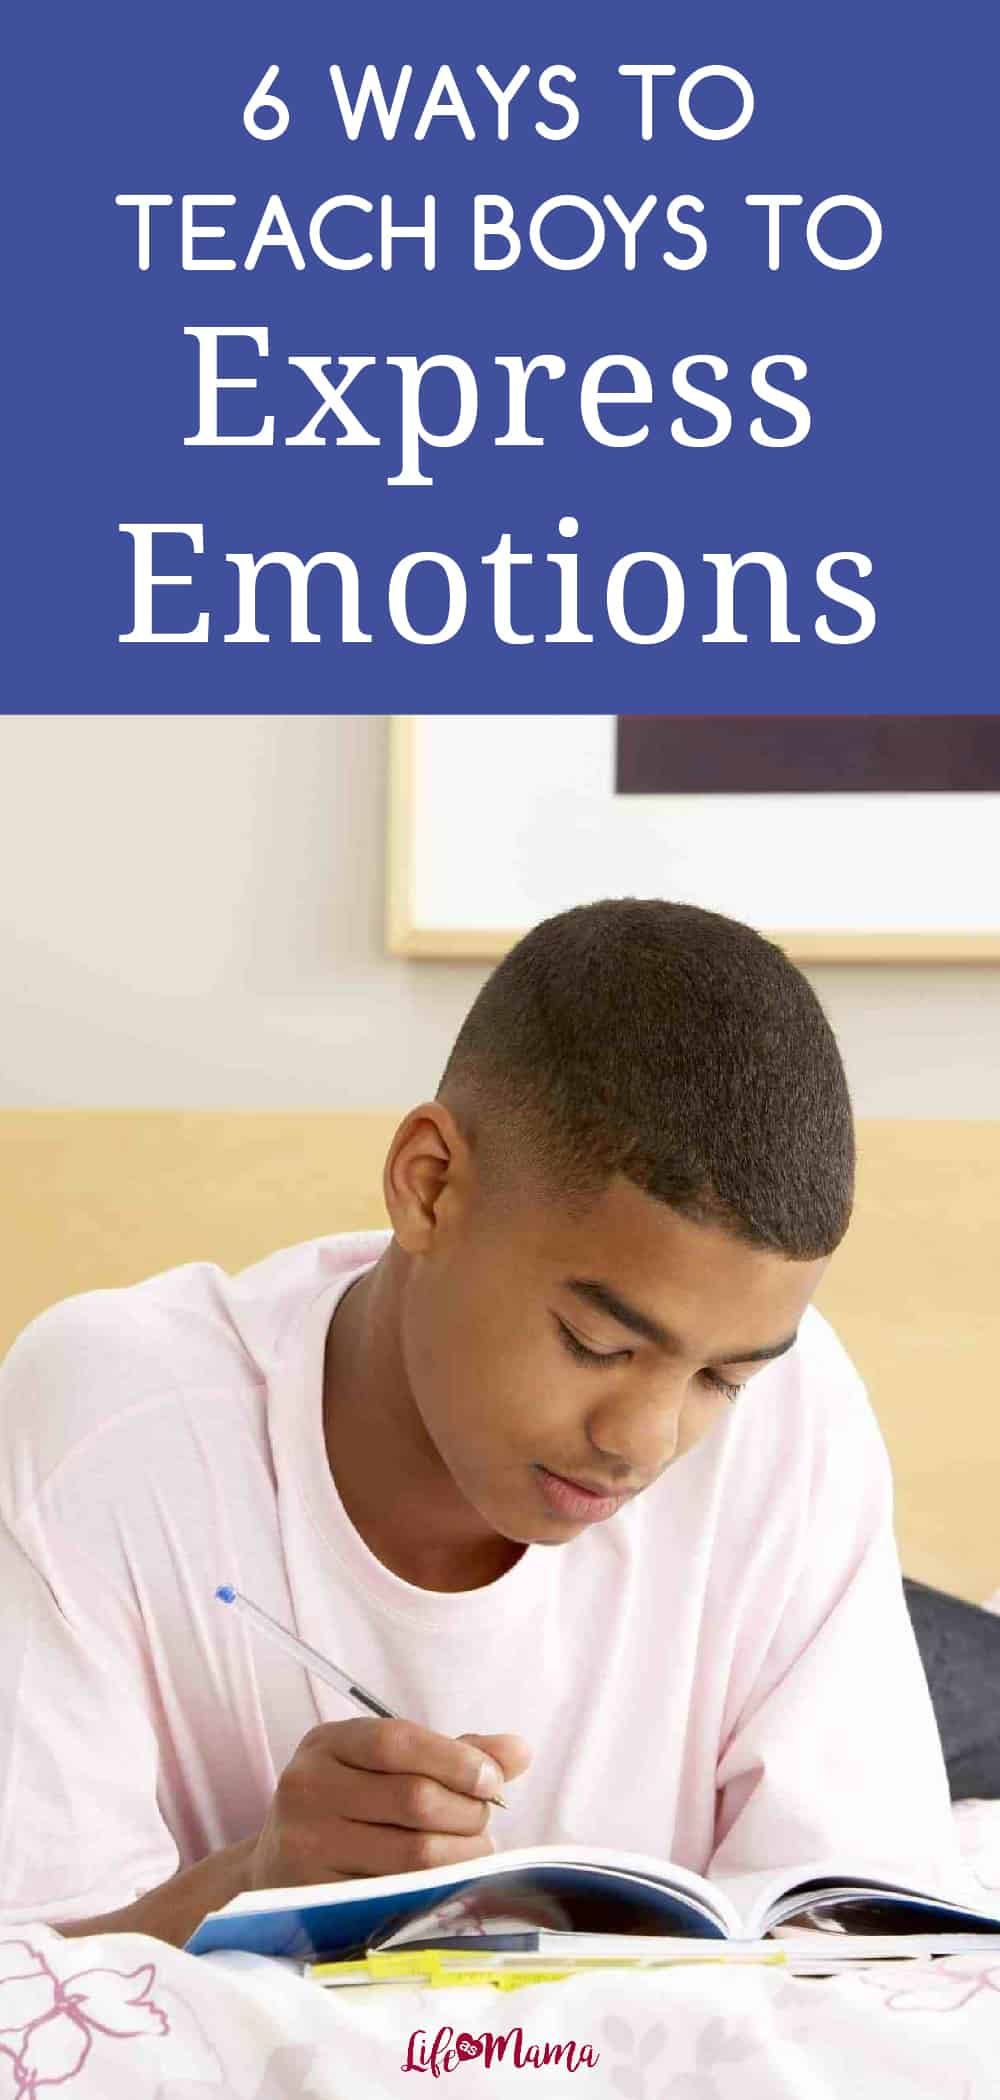 6 Ways To Teach Boys To Express Emotions-03